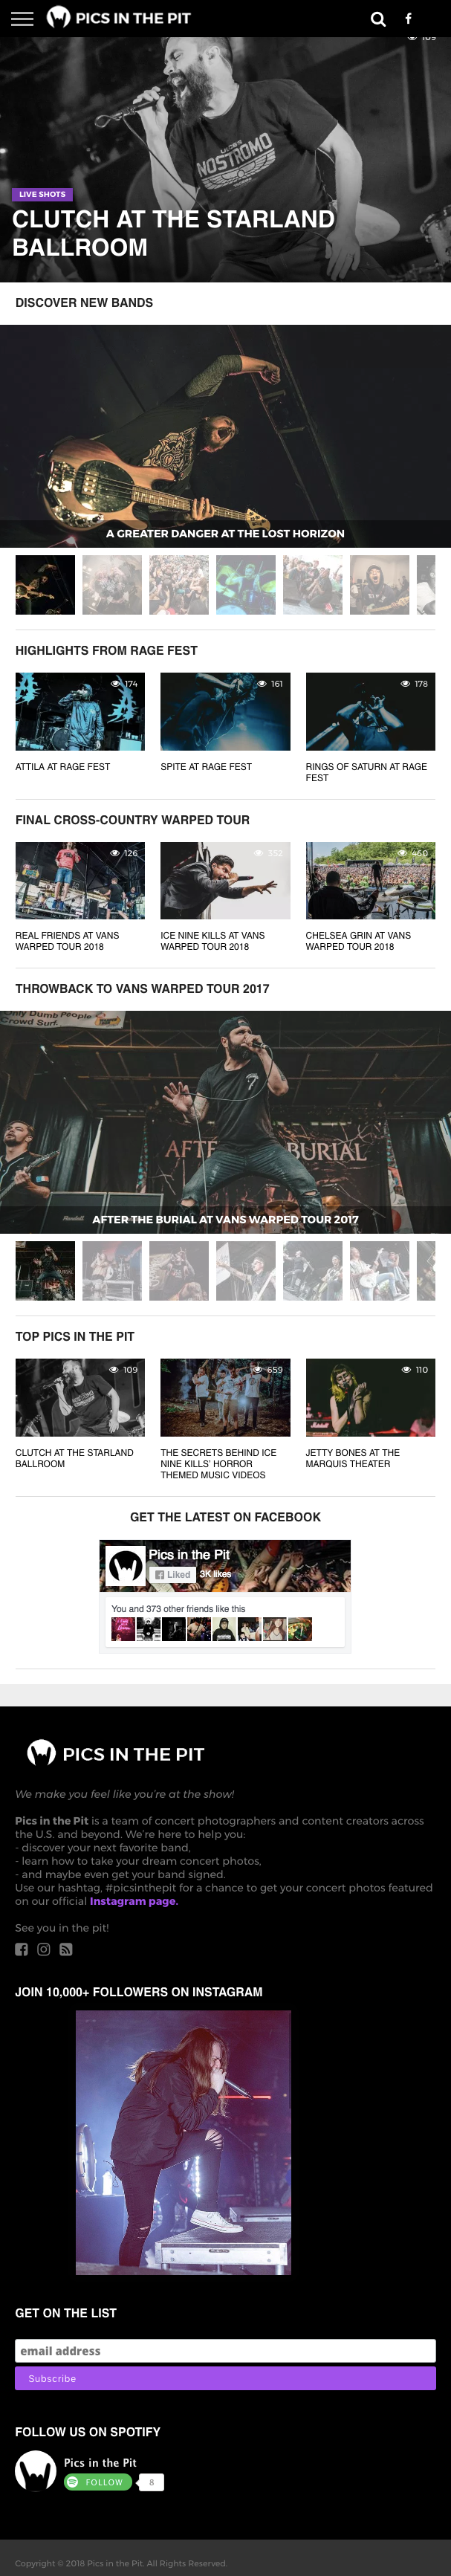 Pics in the Pit - Pics in the Pit.png